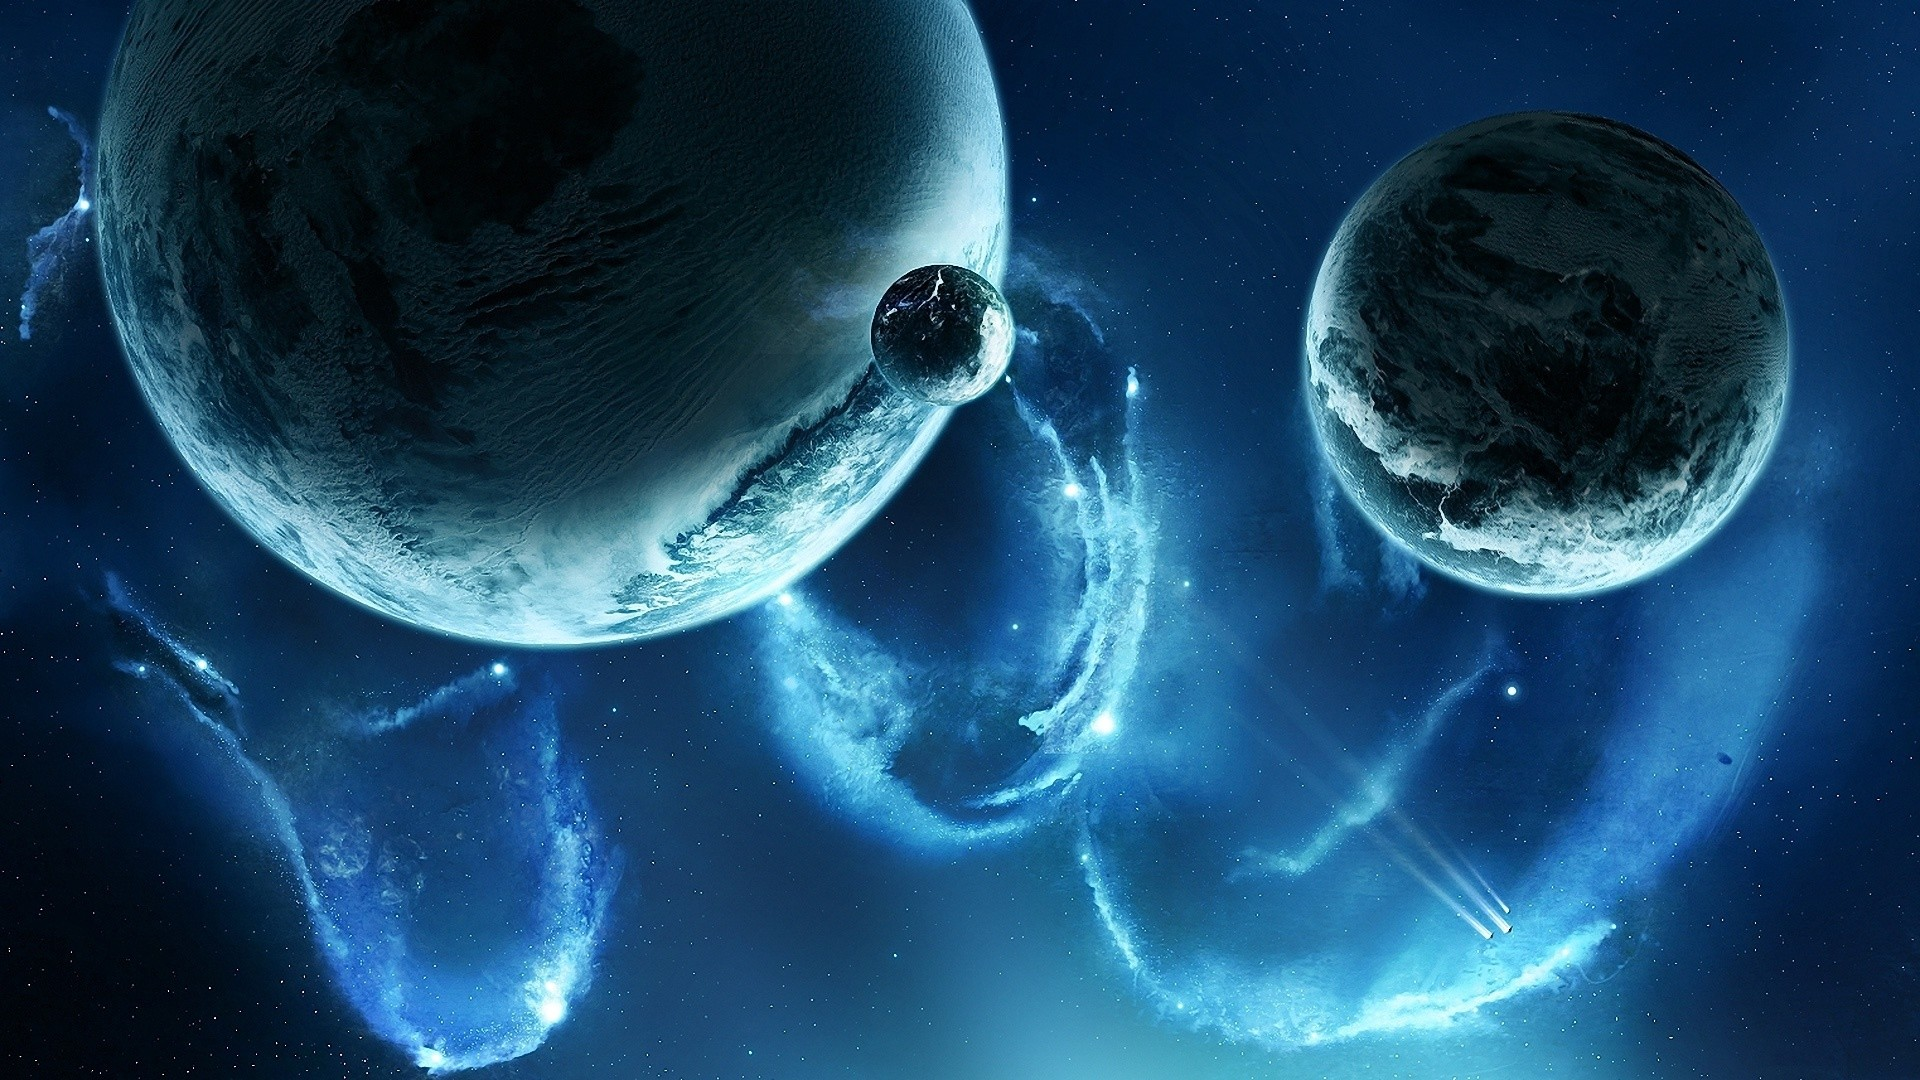 Res: 1920x1080, Cool Blue Space Wallpaper 32327